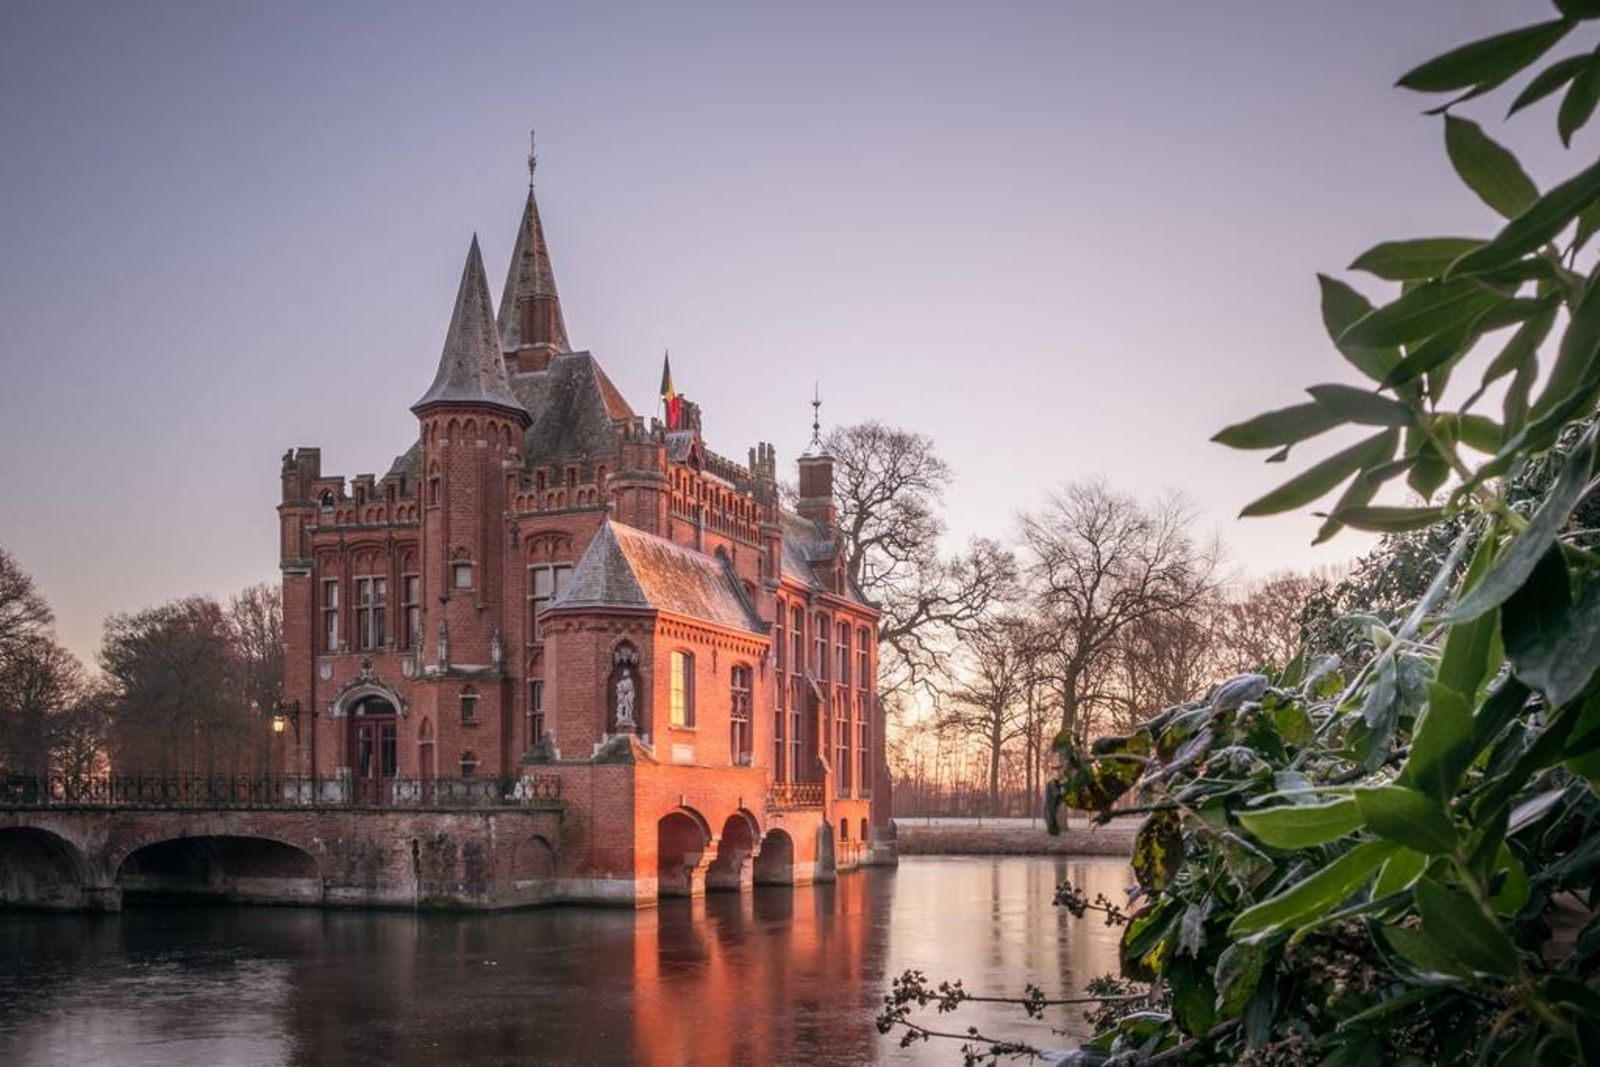 mediavault_images/castle_in_bruges_-_airbnb_m8y0jd